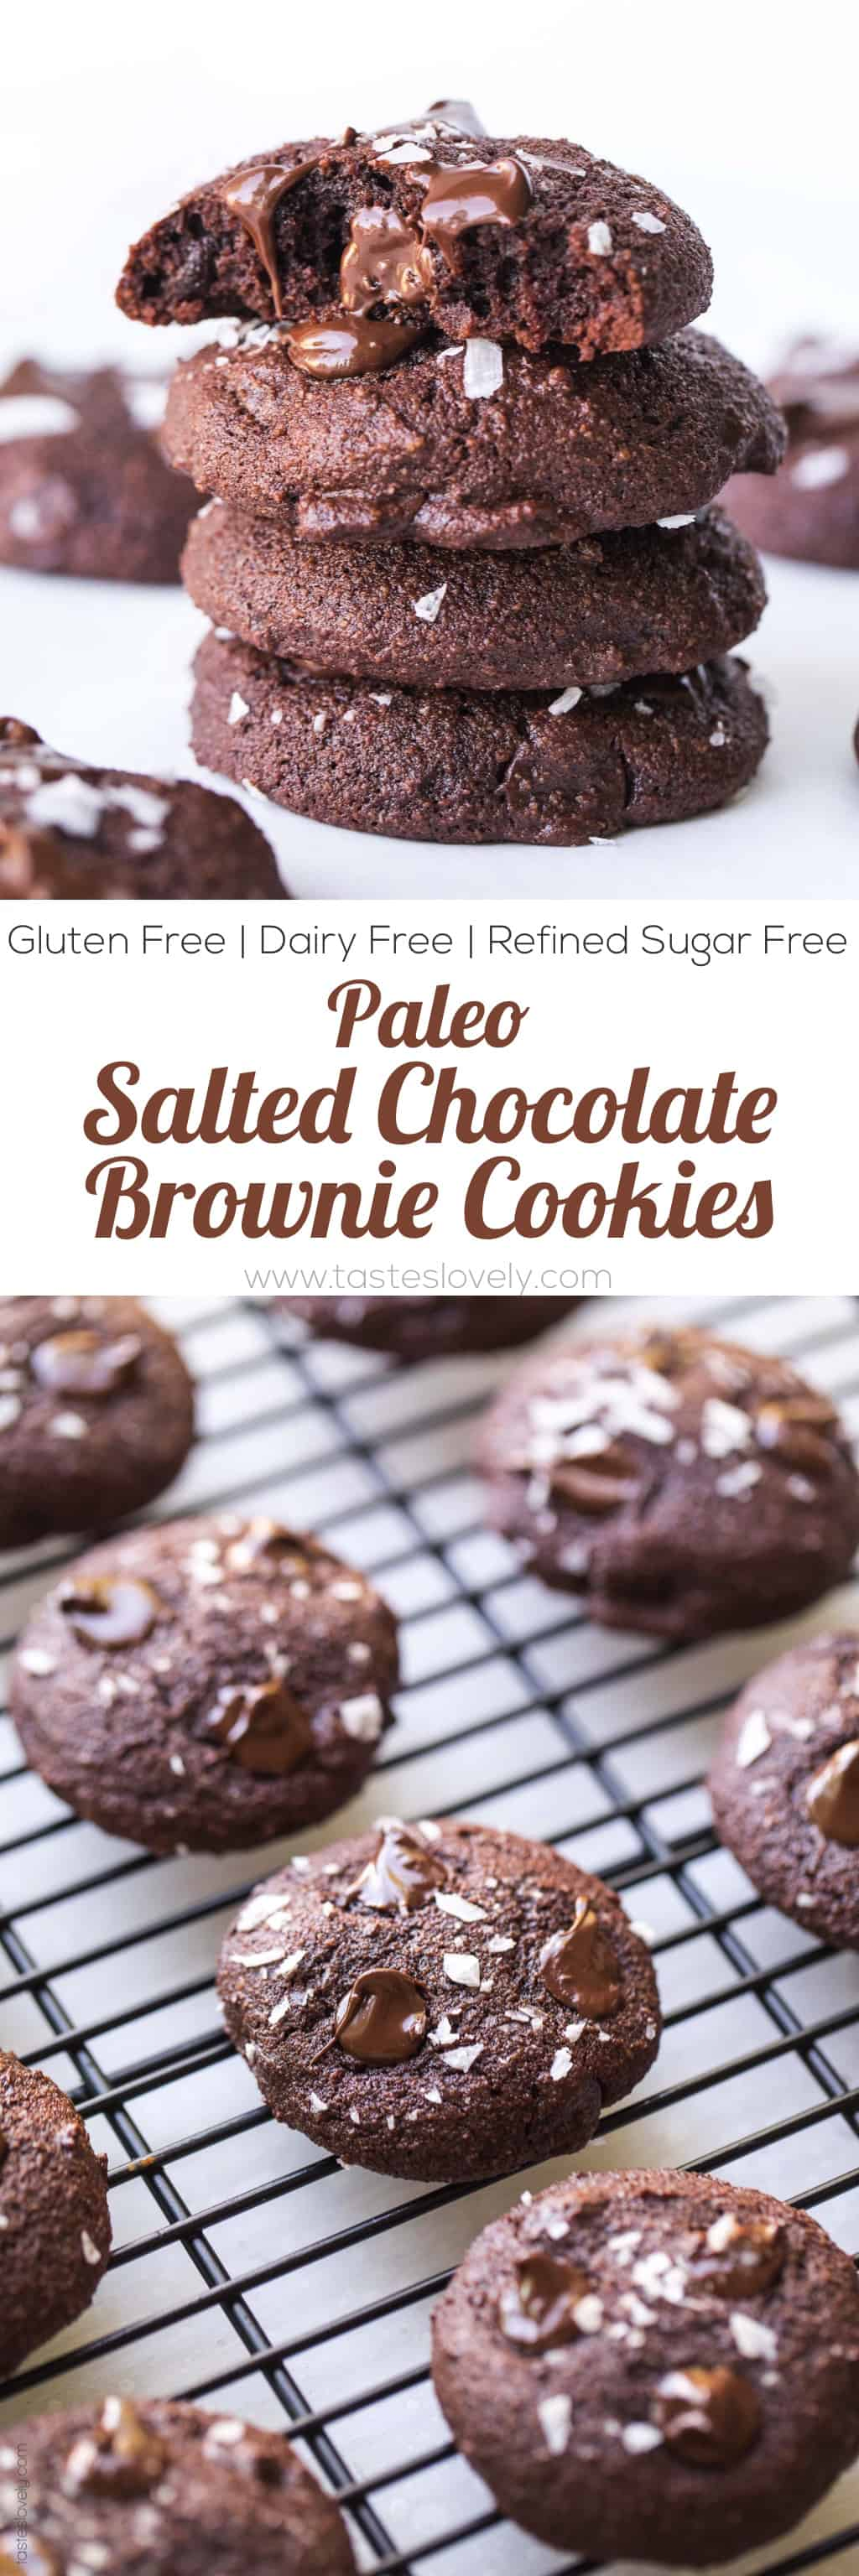 Paleo Salted Chocolate Brownie Cookies Recipe - made with almond flour and sweetened with coconut sugar! (gluten free, grain free, dairy free, refined sugar free, clean eating, keto